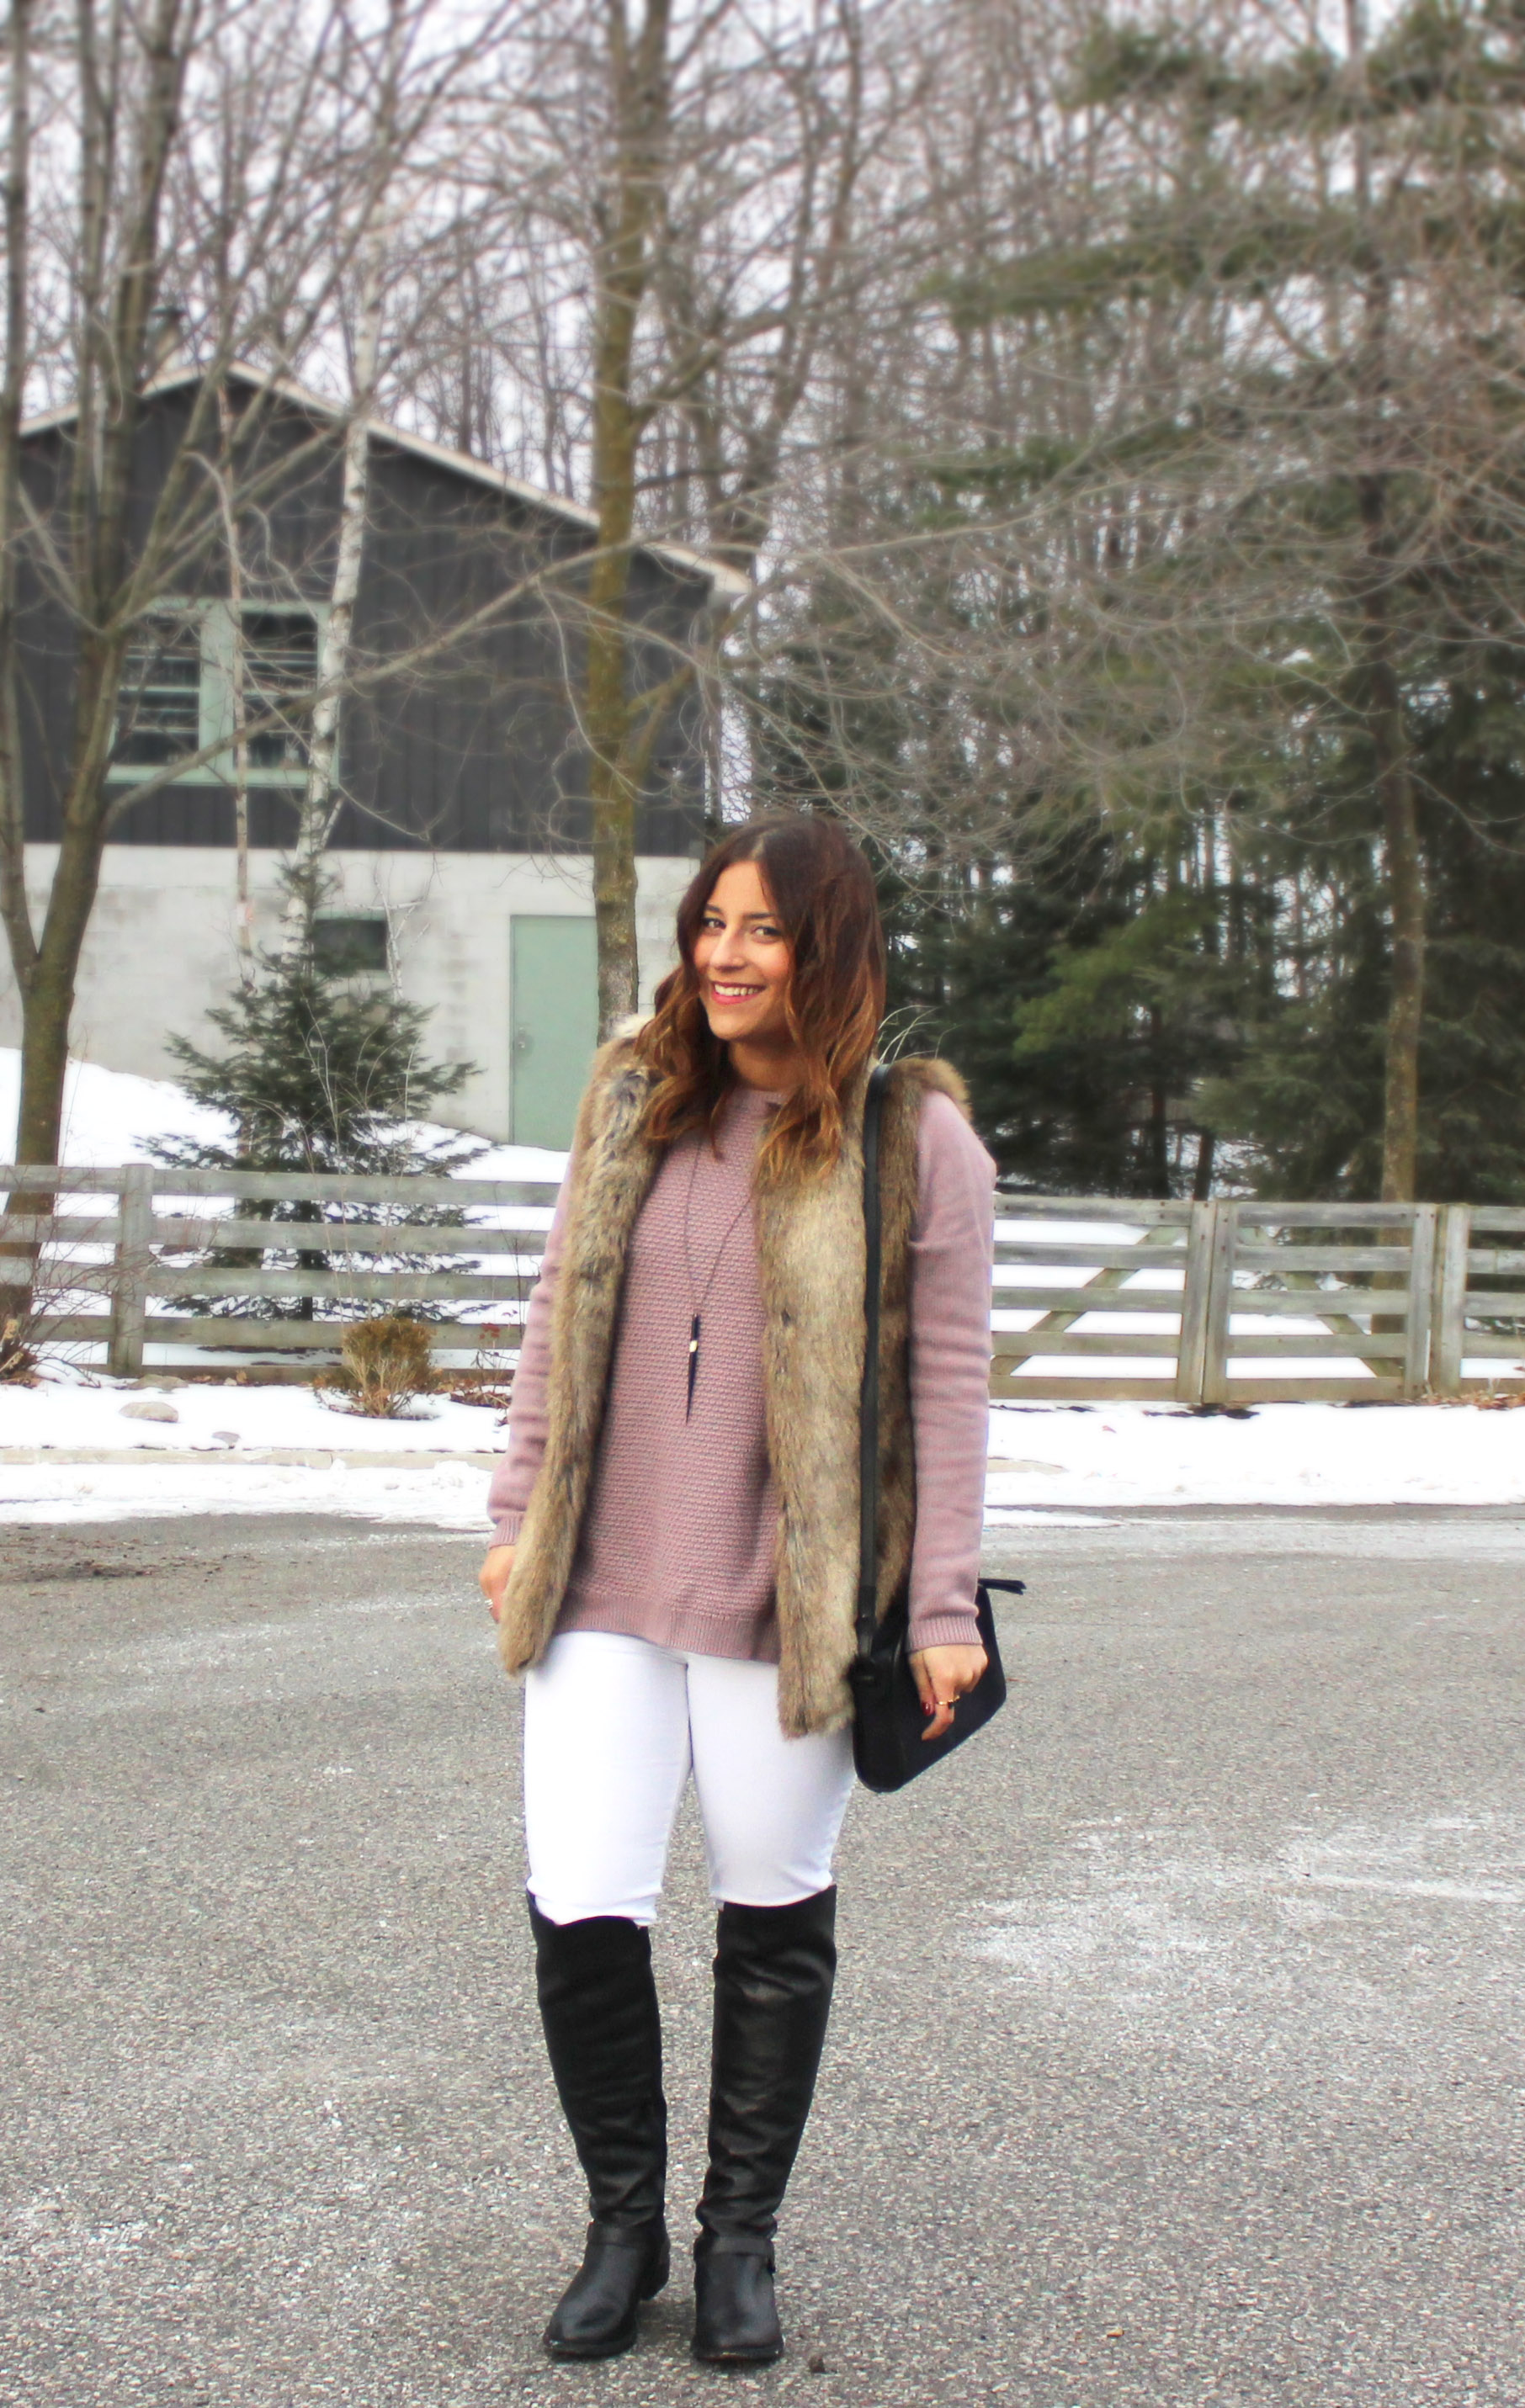 Wearing White in Winter - How to style white jeans in the winter